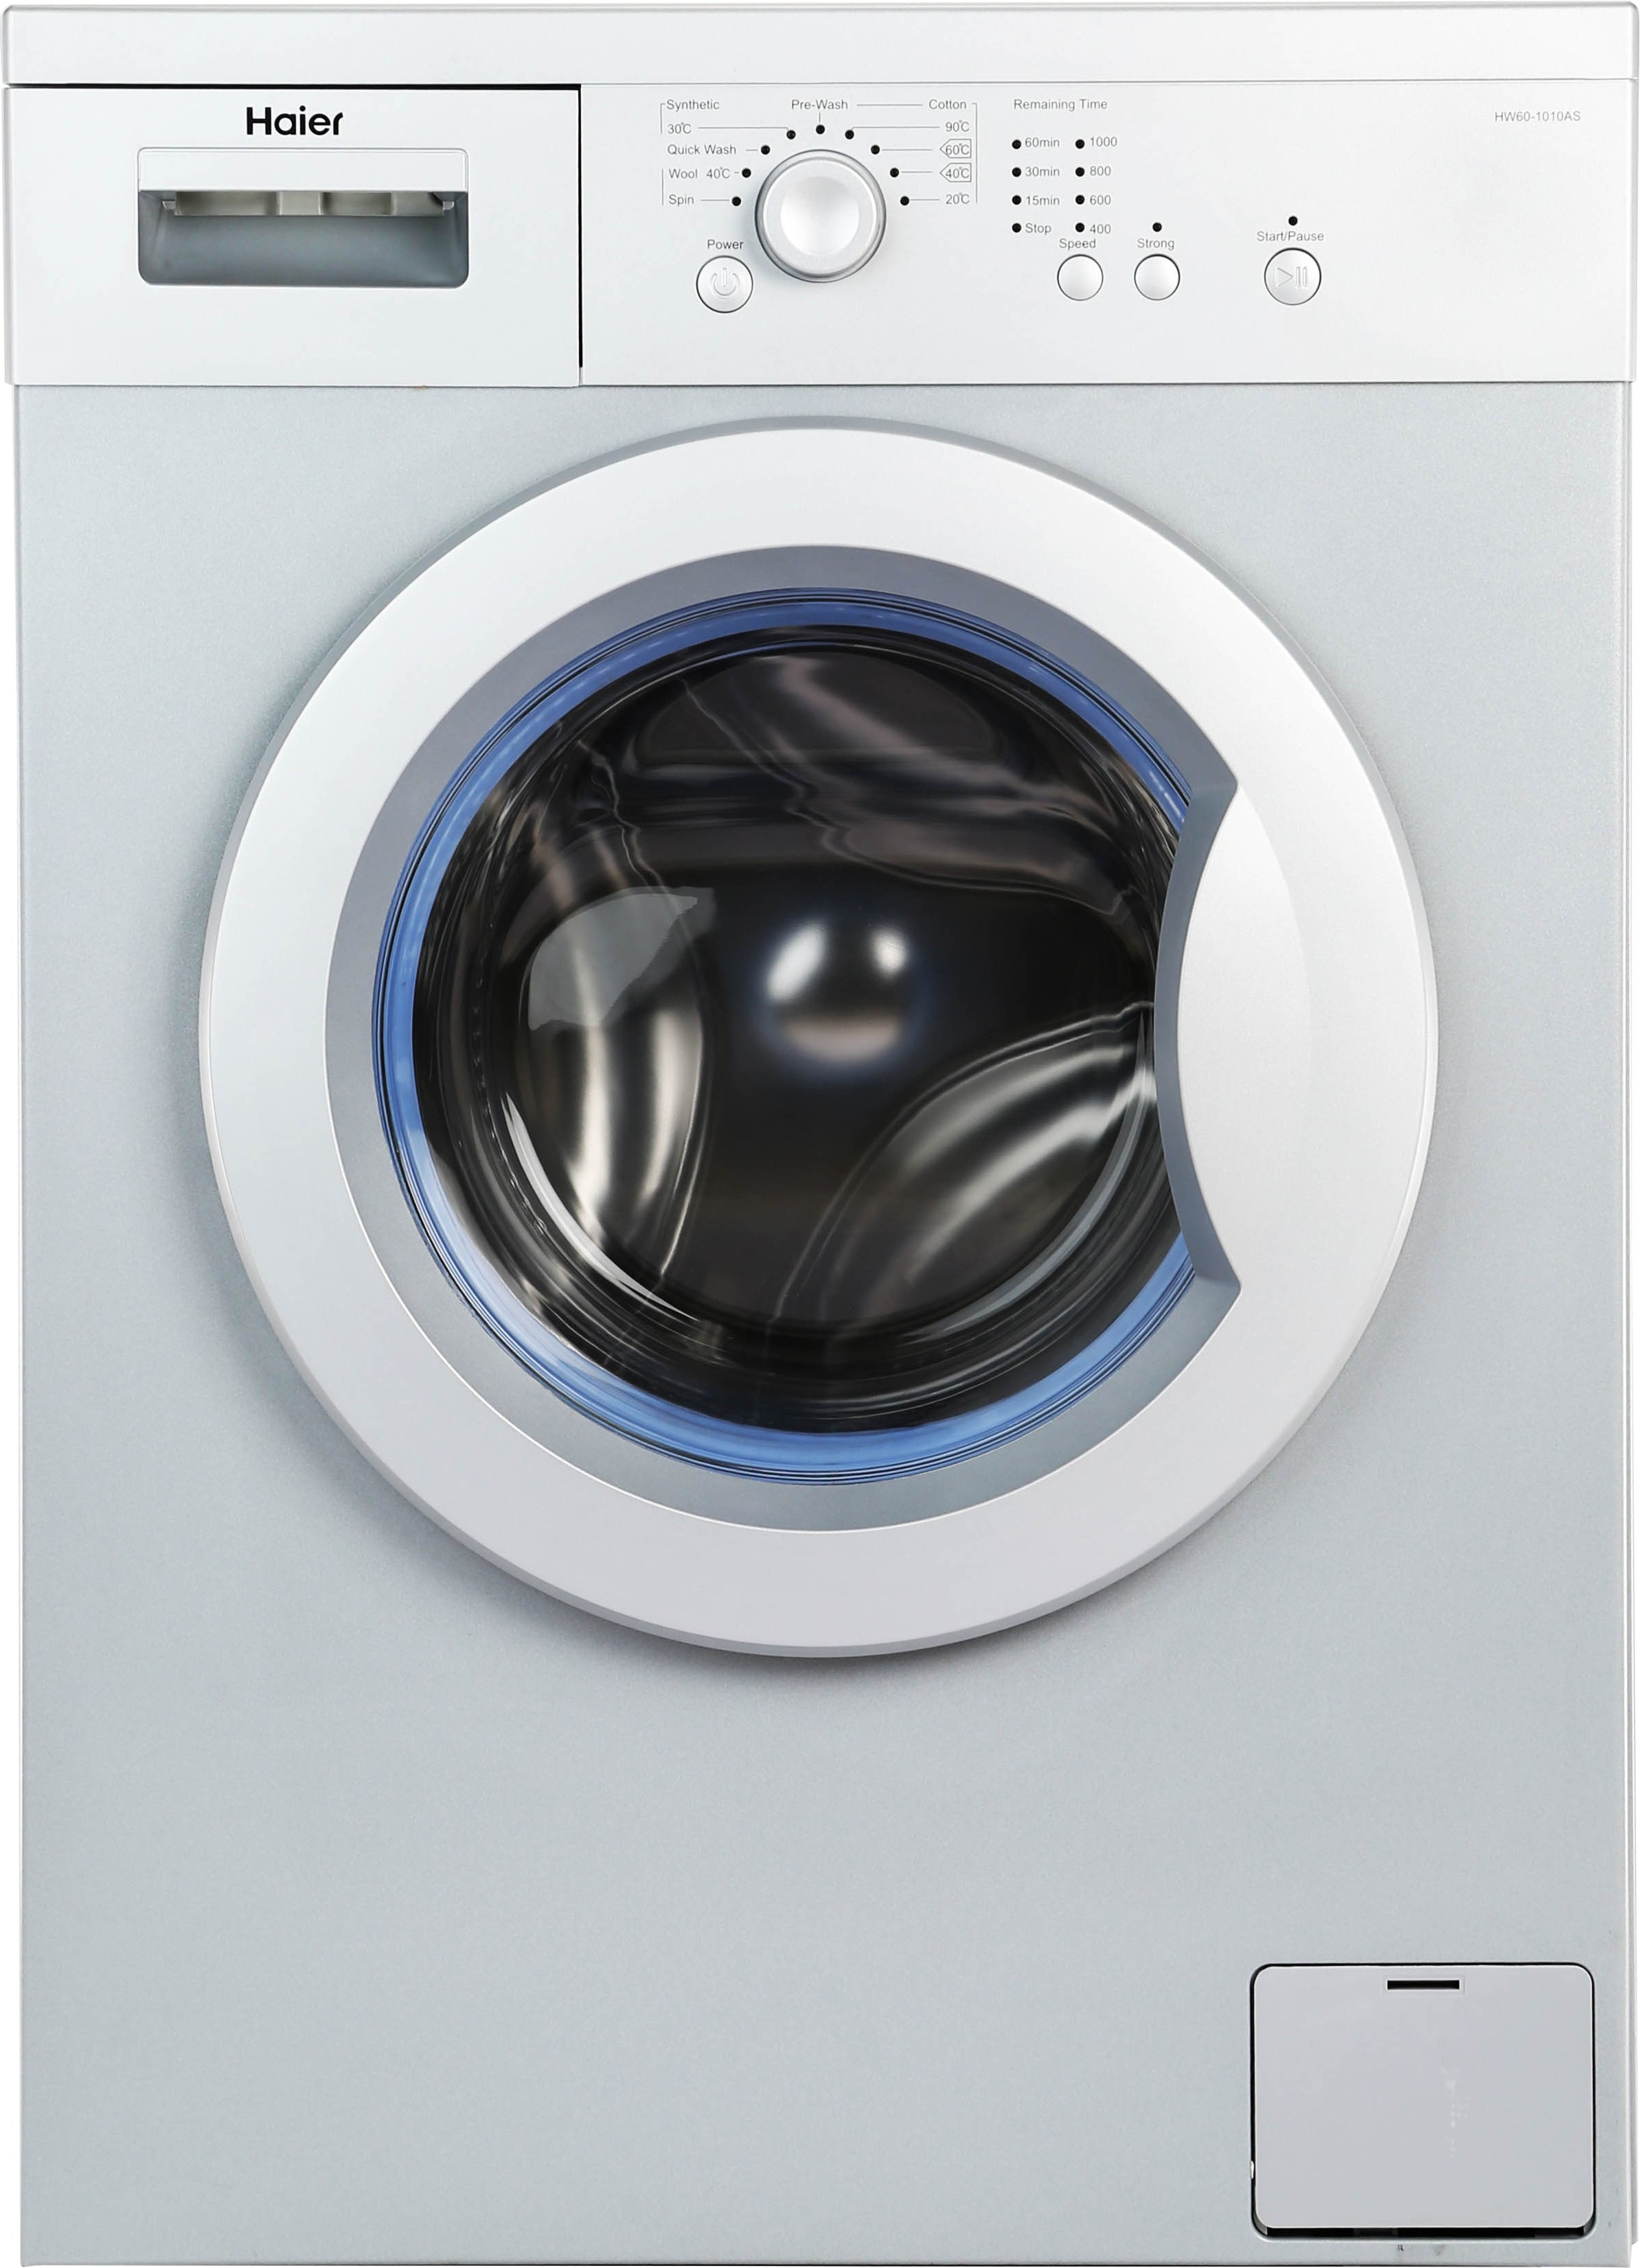 HAIER HW60-1010AS 6KG Fully Automatic Front Load Washing Machine